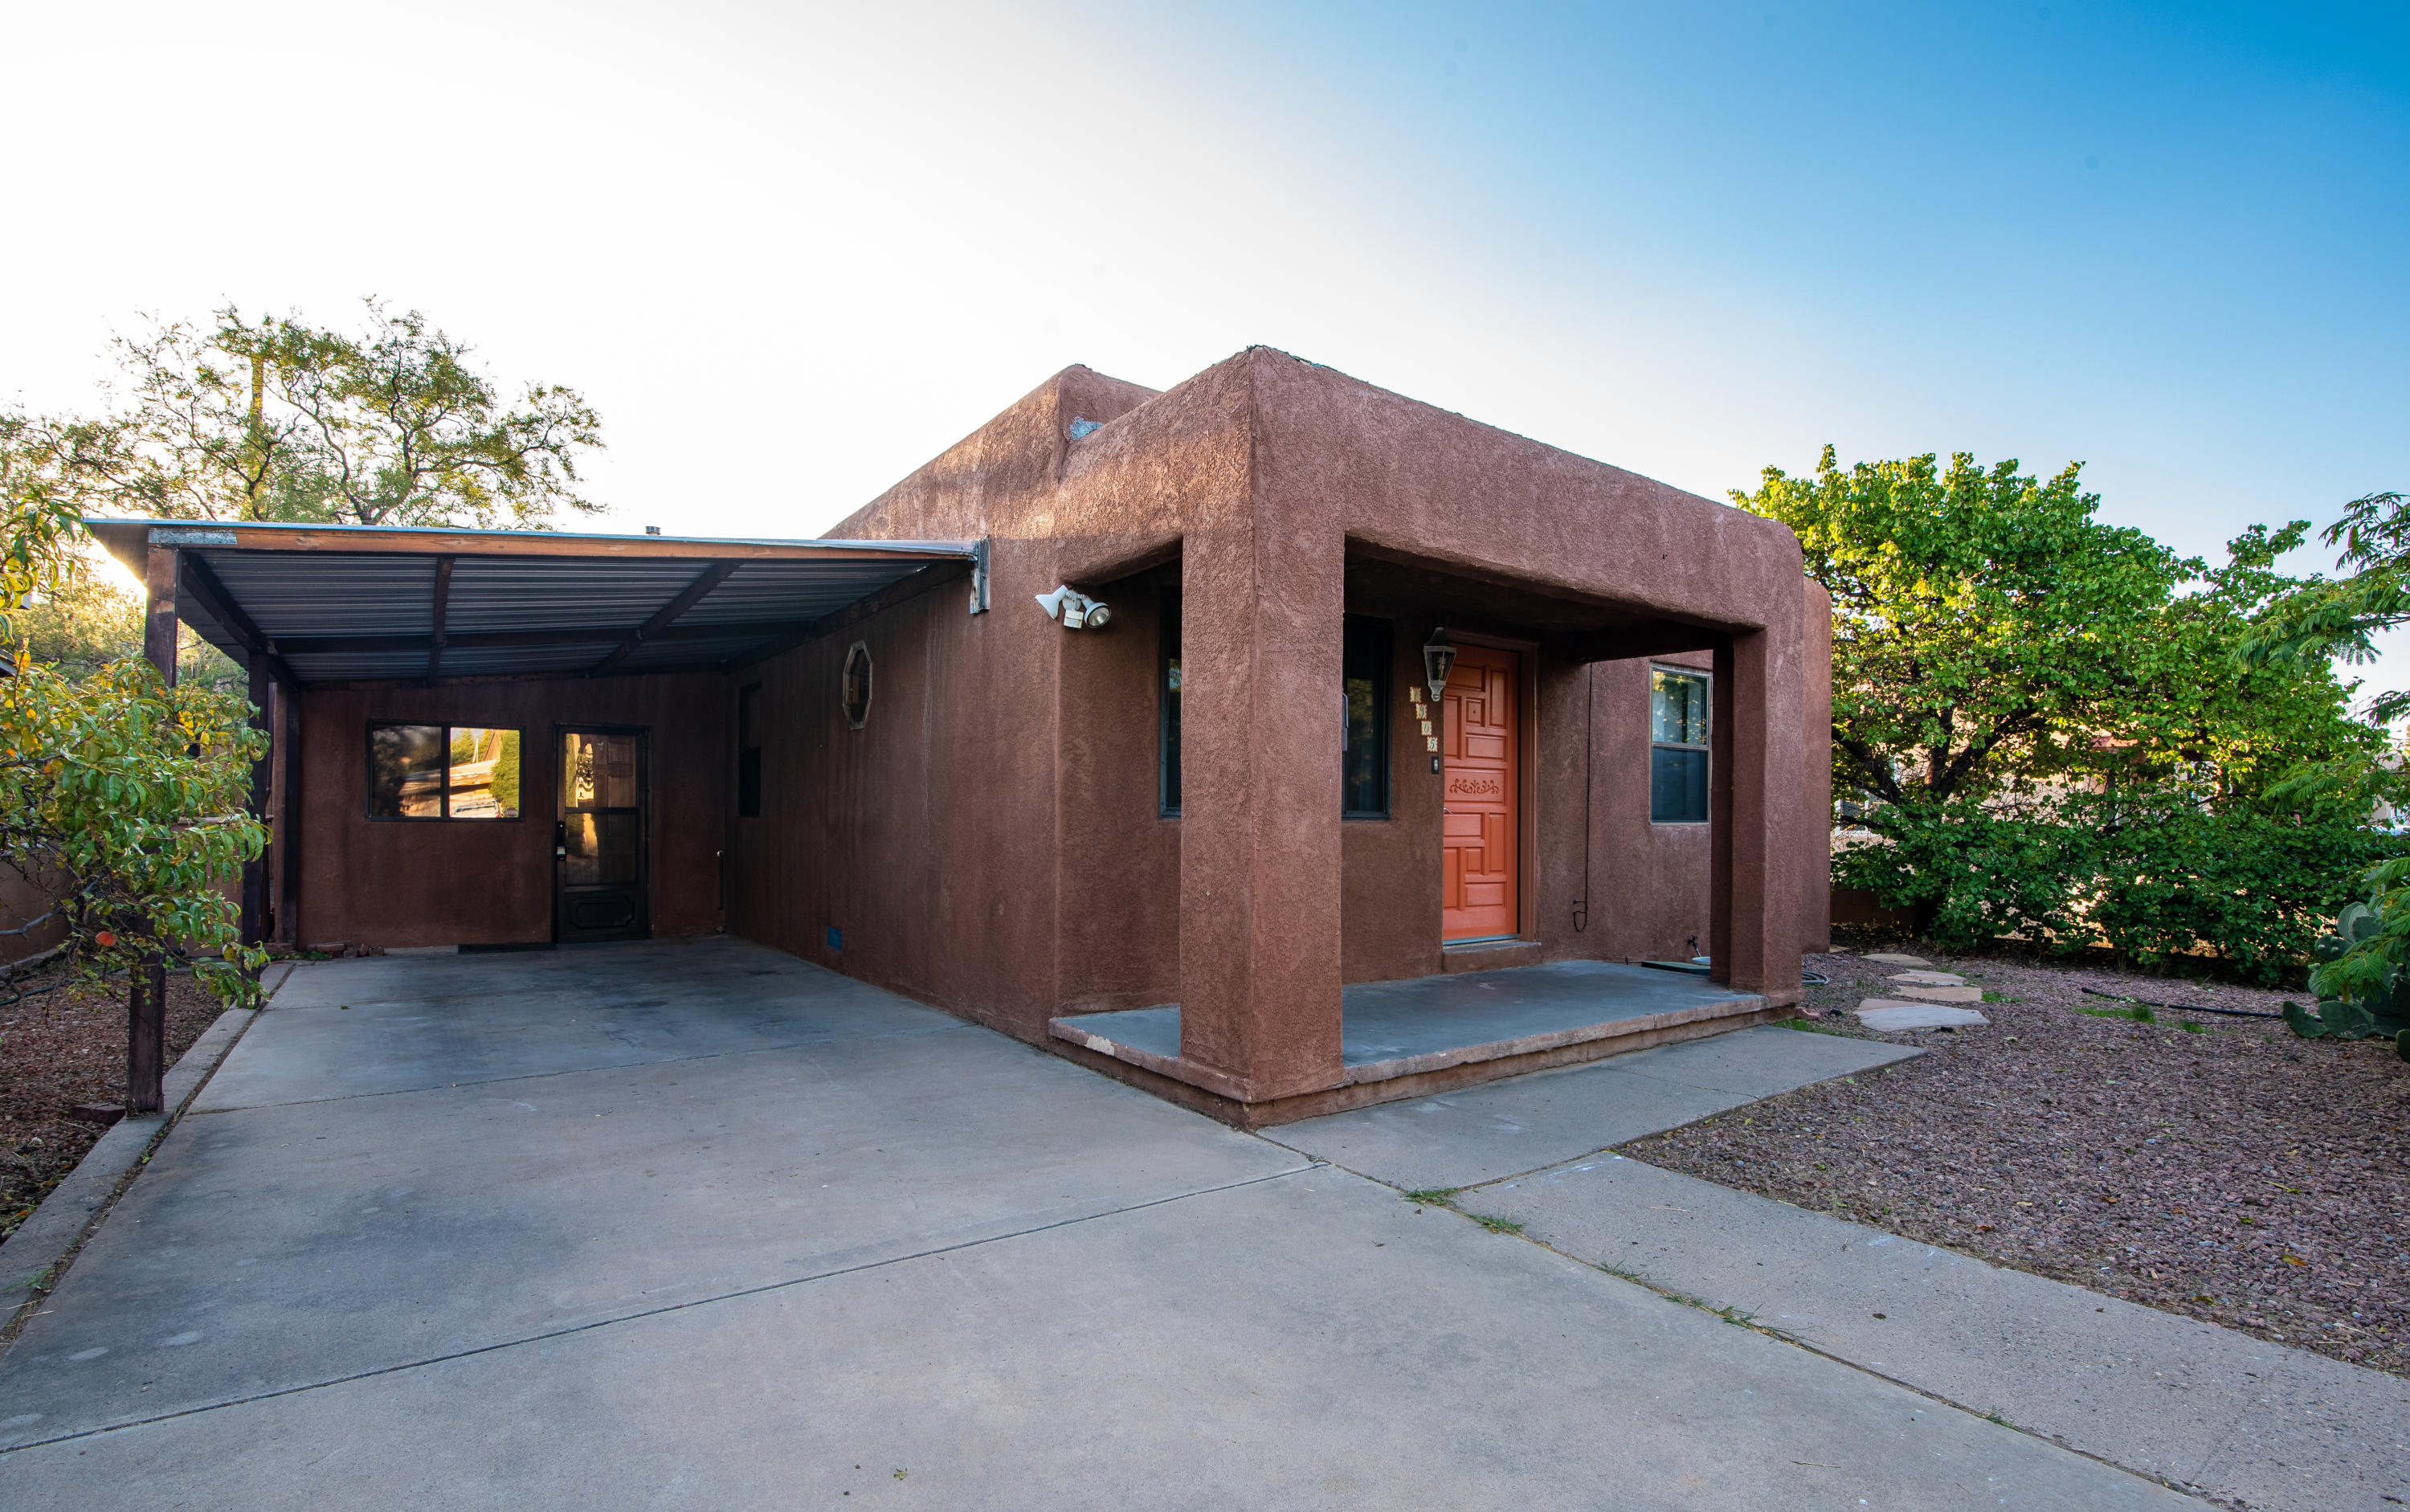 Welcome to 1305 Princeton Dr NE! Located in desirable north UNM area close to all Nob Hill amenities. This home offers hardwood and saltillo tile floors throughout, two completely remodeled bathrooms, a large living room centered around a wood burning stove promising the coziest winter evenings. The private backyard pergola is ready for your patio decorations and enjoyment. Summer evening cookouts will be a new way of life. You'll be within easy pedestrian commutes to restaurants, grocery stores, hospitals and UNM. This would make a great first time home or investment property ready to go for airbnb. The front and back yard are drip system ready for your landscaping designs and gardening wishes. It's just waiting for you to make it your own.